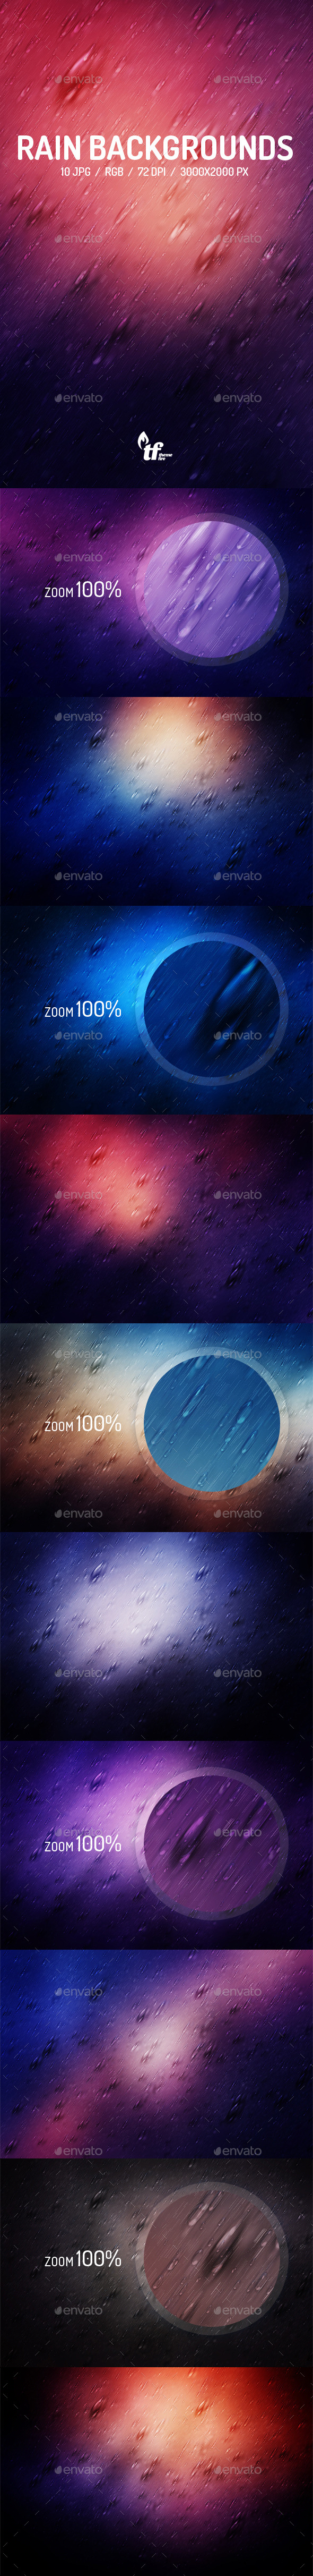 GraphicRiver Rain Backgrounds 9029550